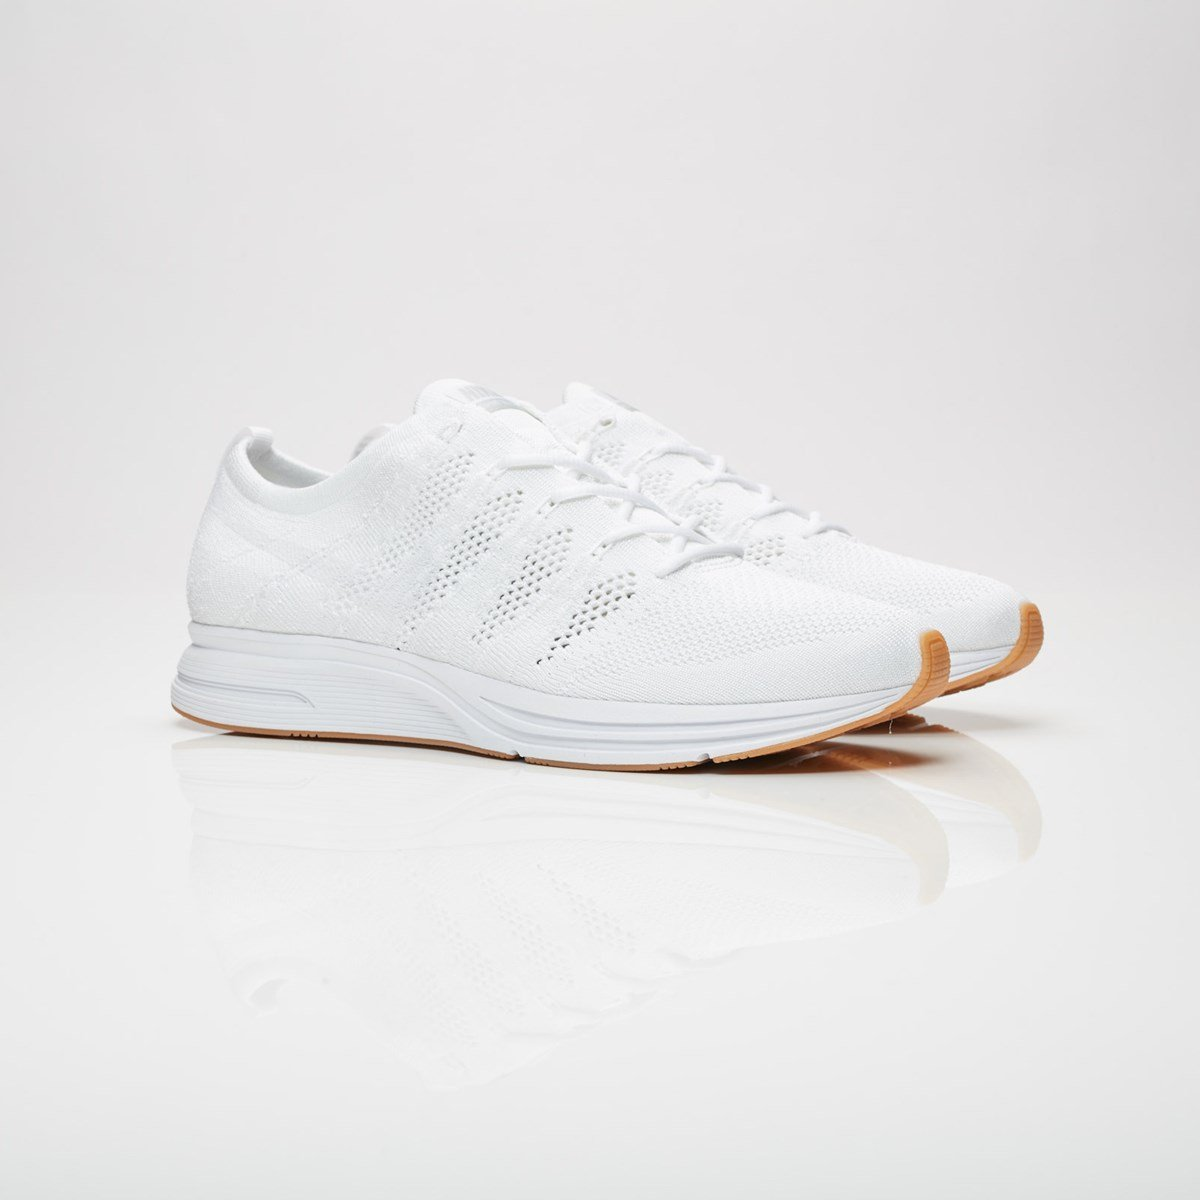 Nike Wmns Air Max Thea 599409 102 Sneakersnstuff